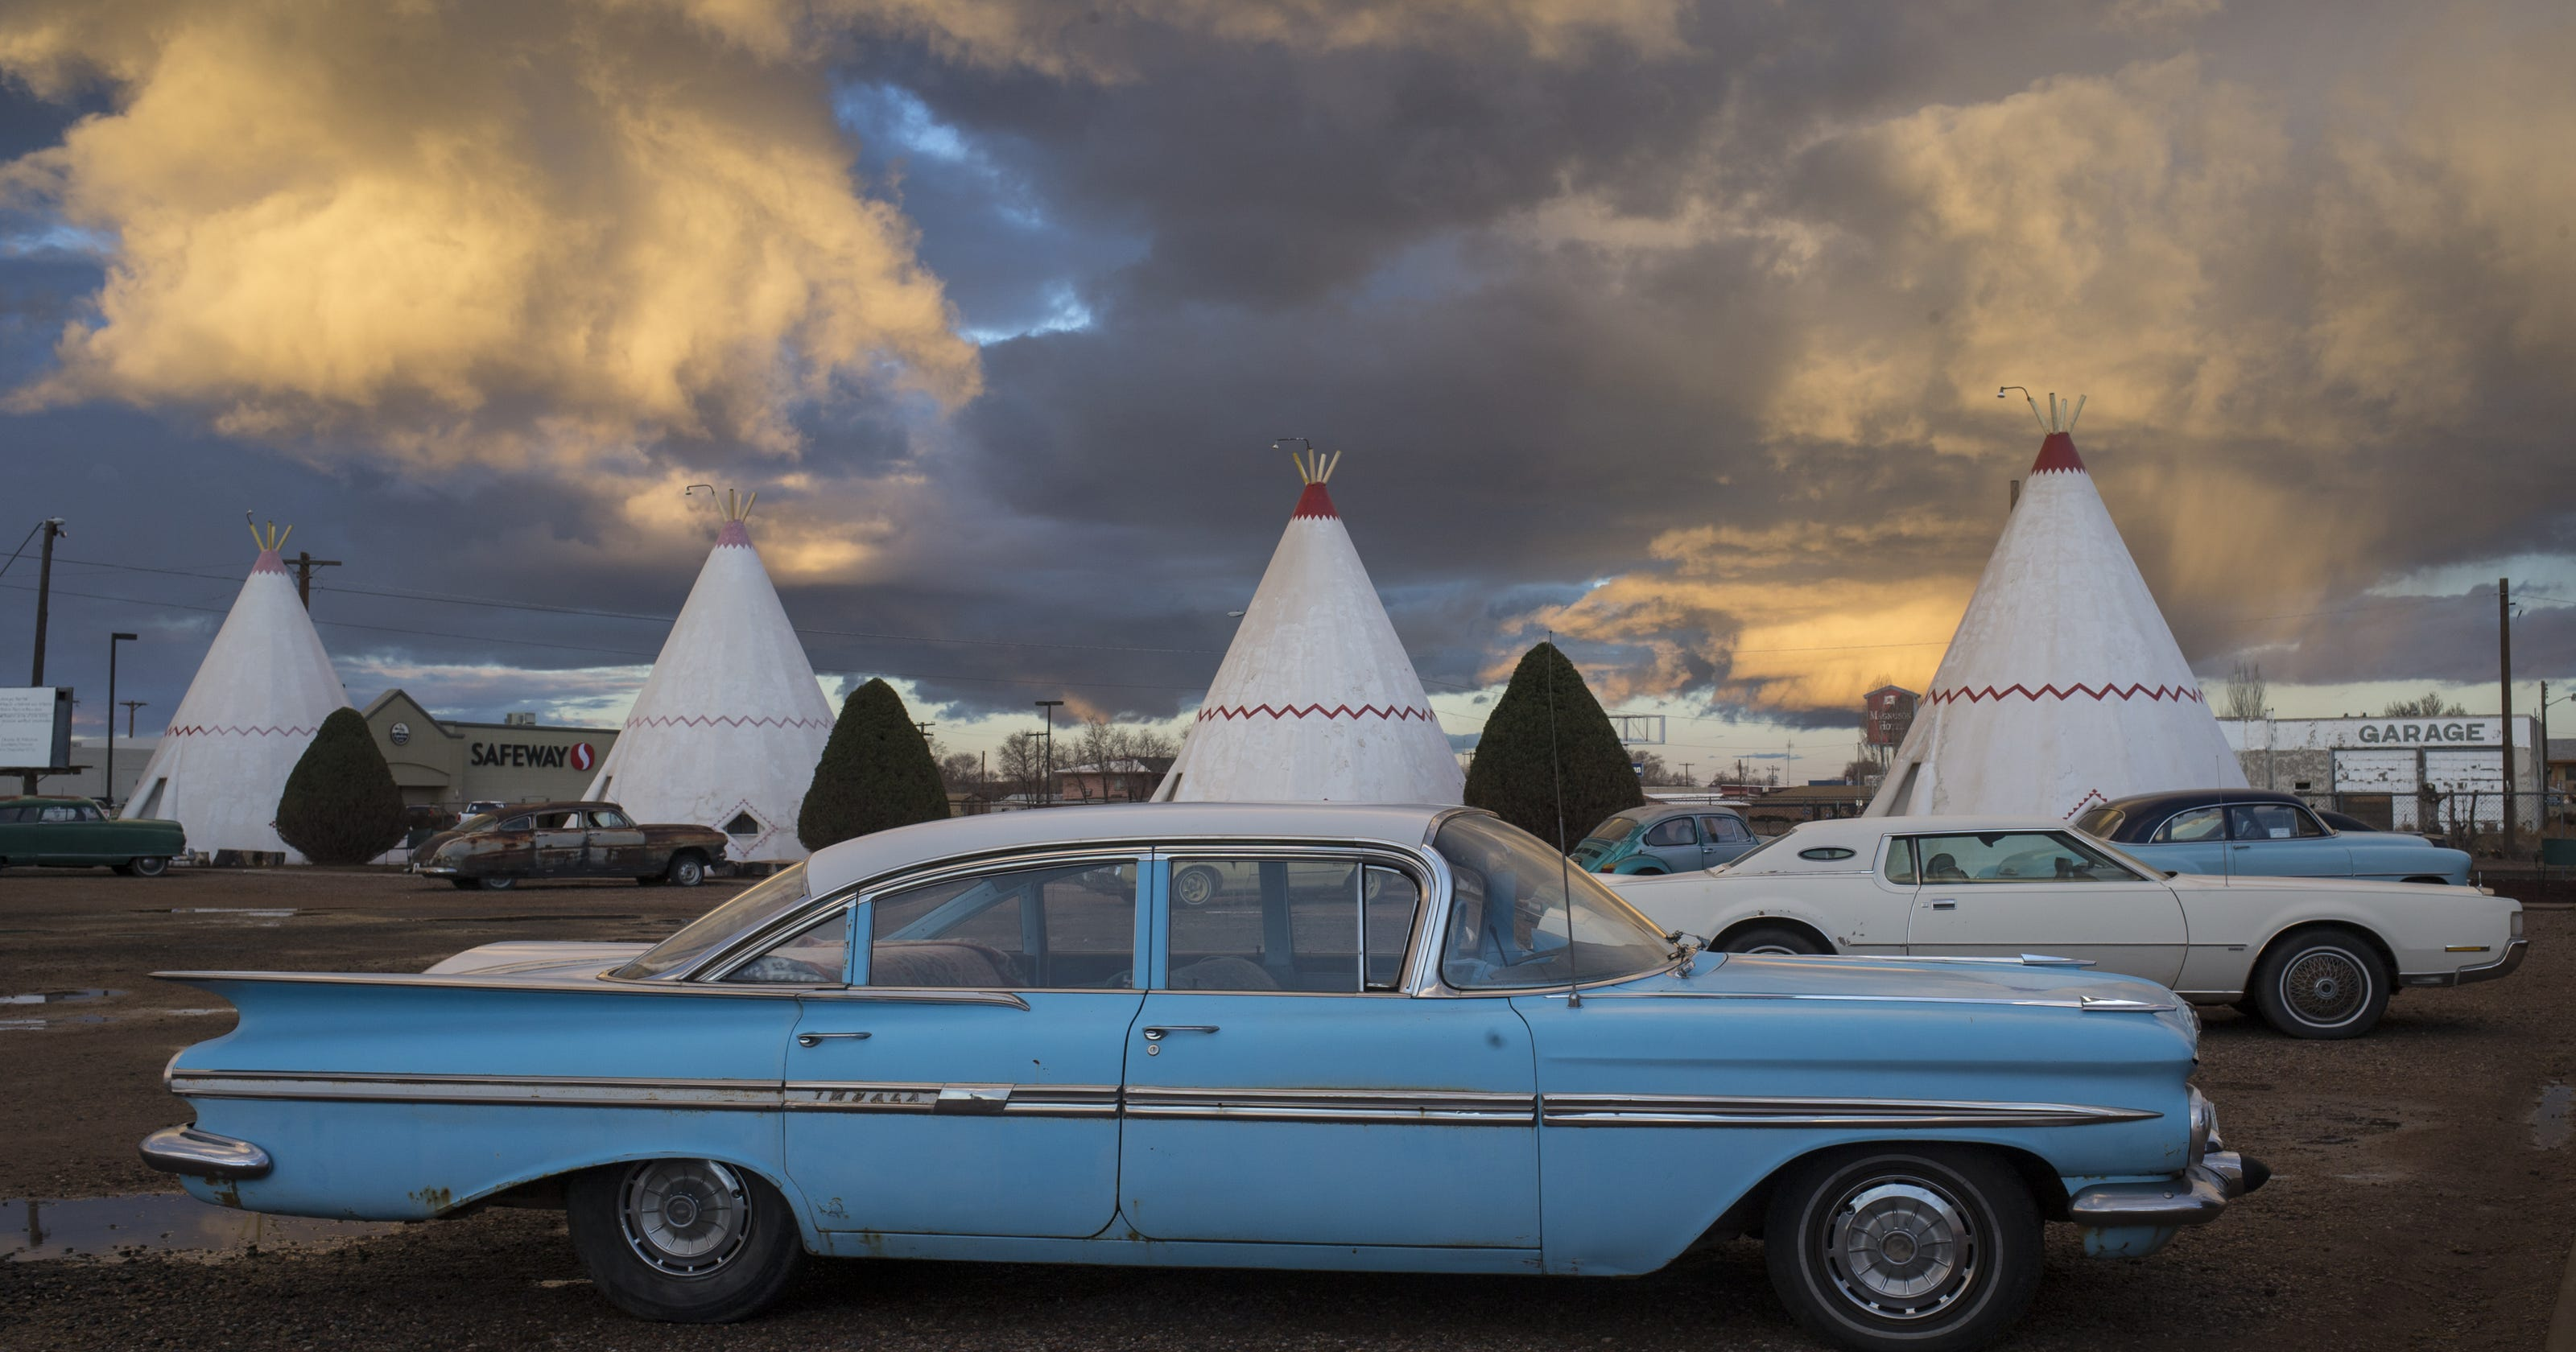 10 of Arizona's most unusual roadside attractions. Some are downright weird.